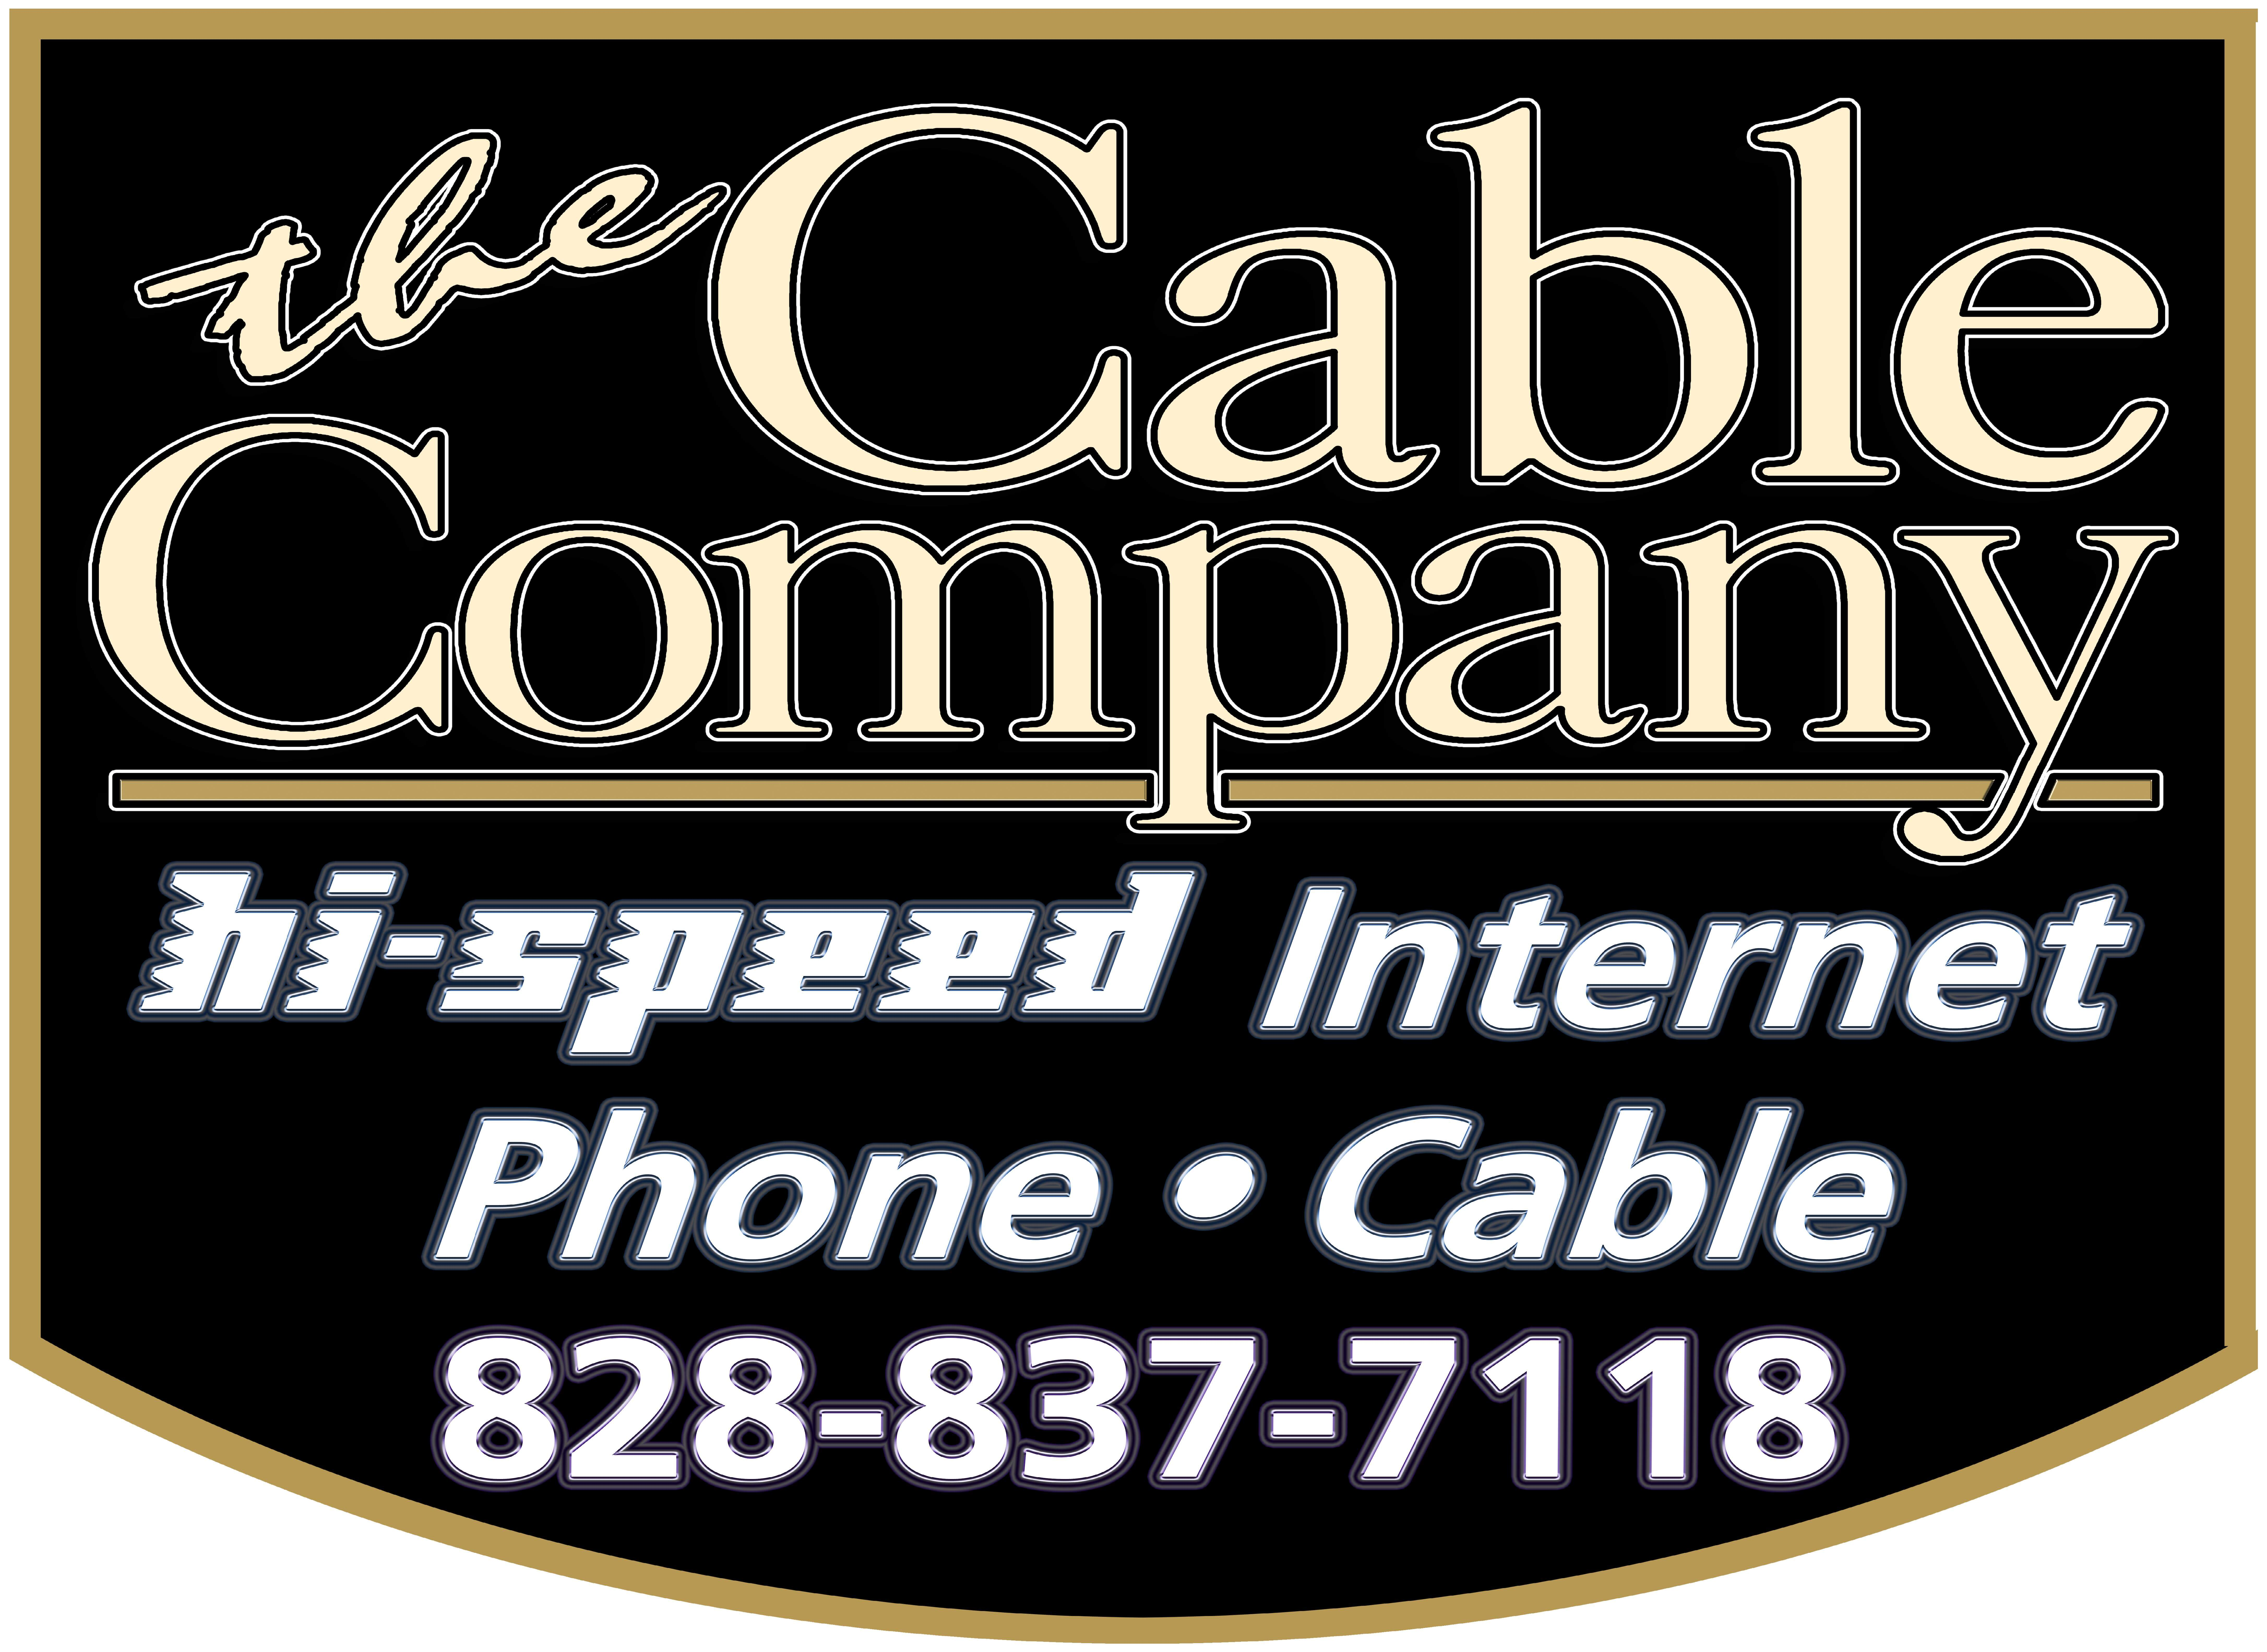 Cable Company Logo in Footer